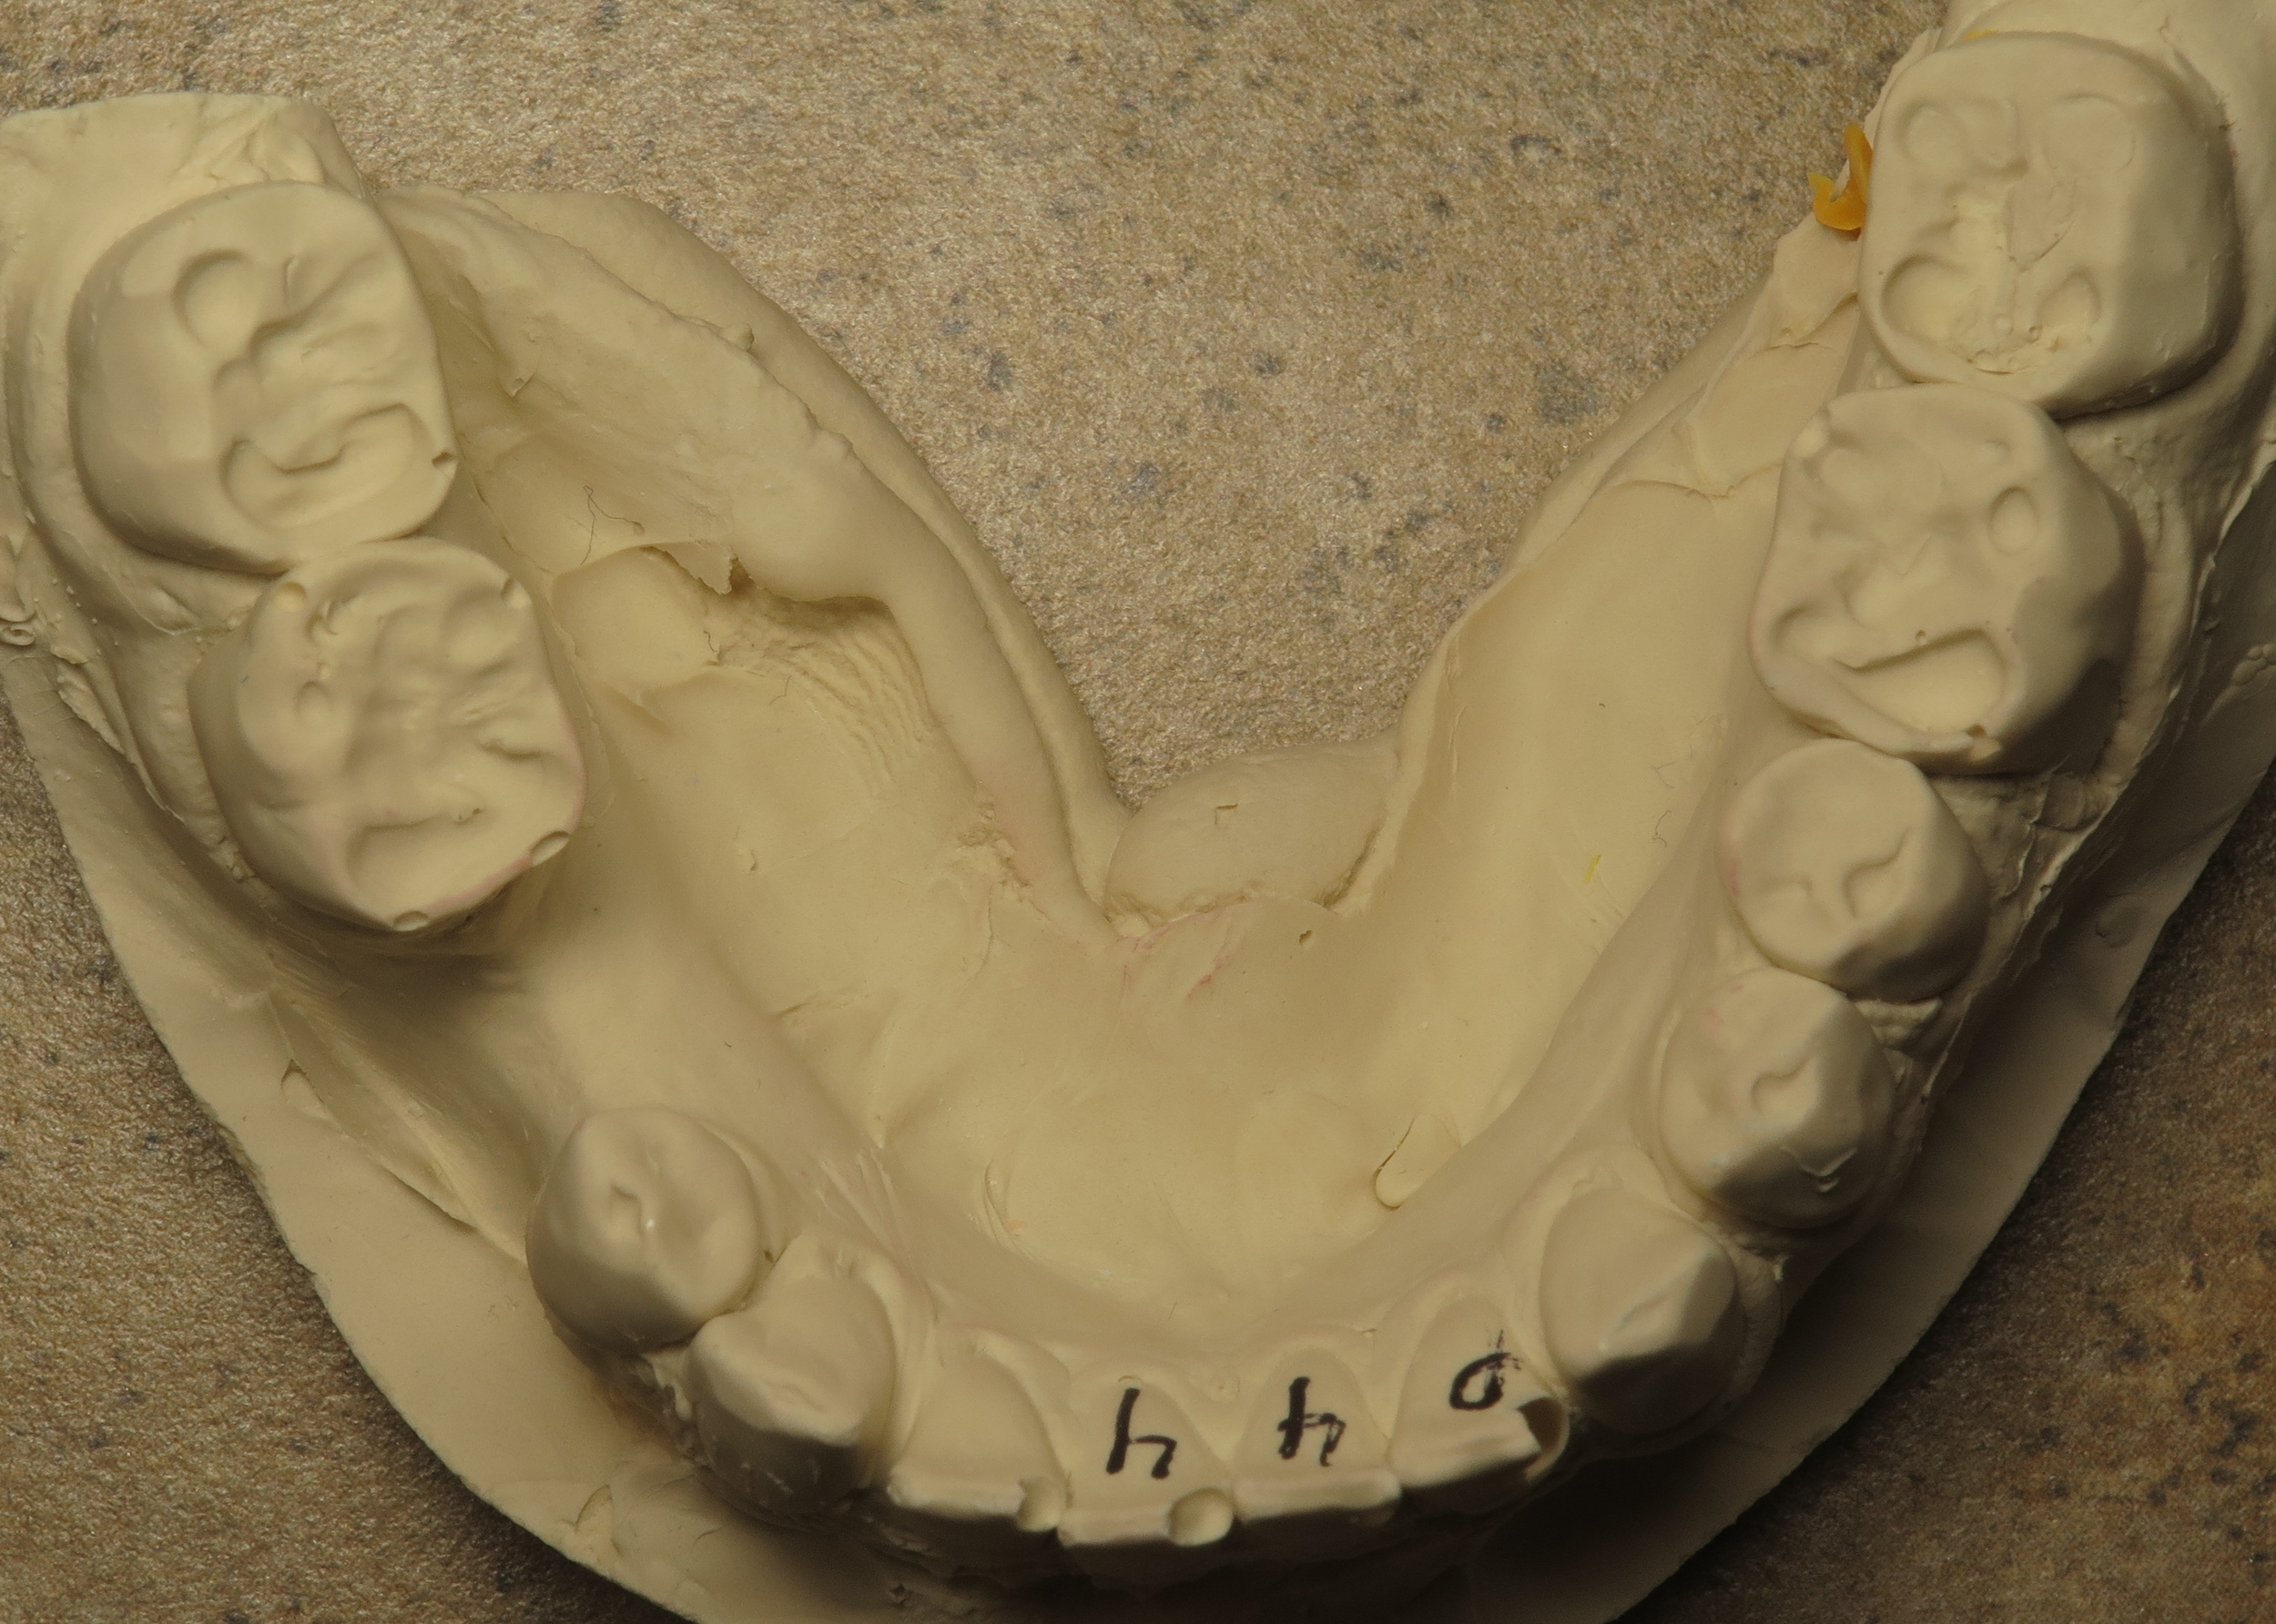 Stone modelwork of the patient before treatment